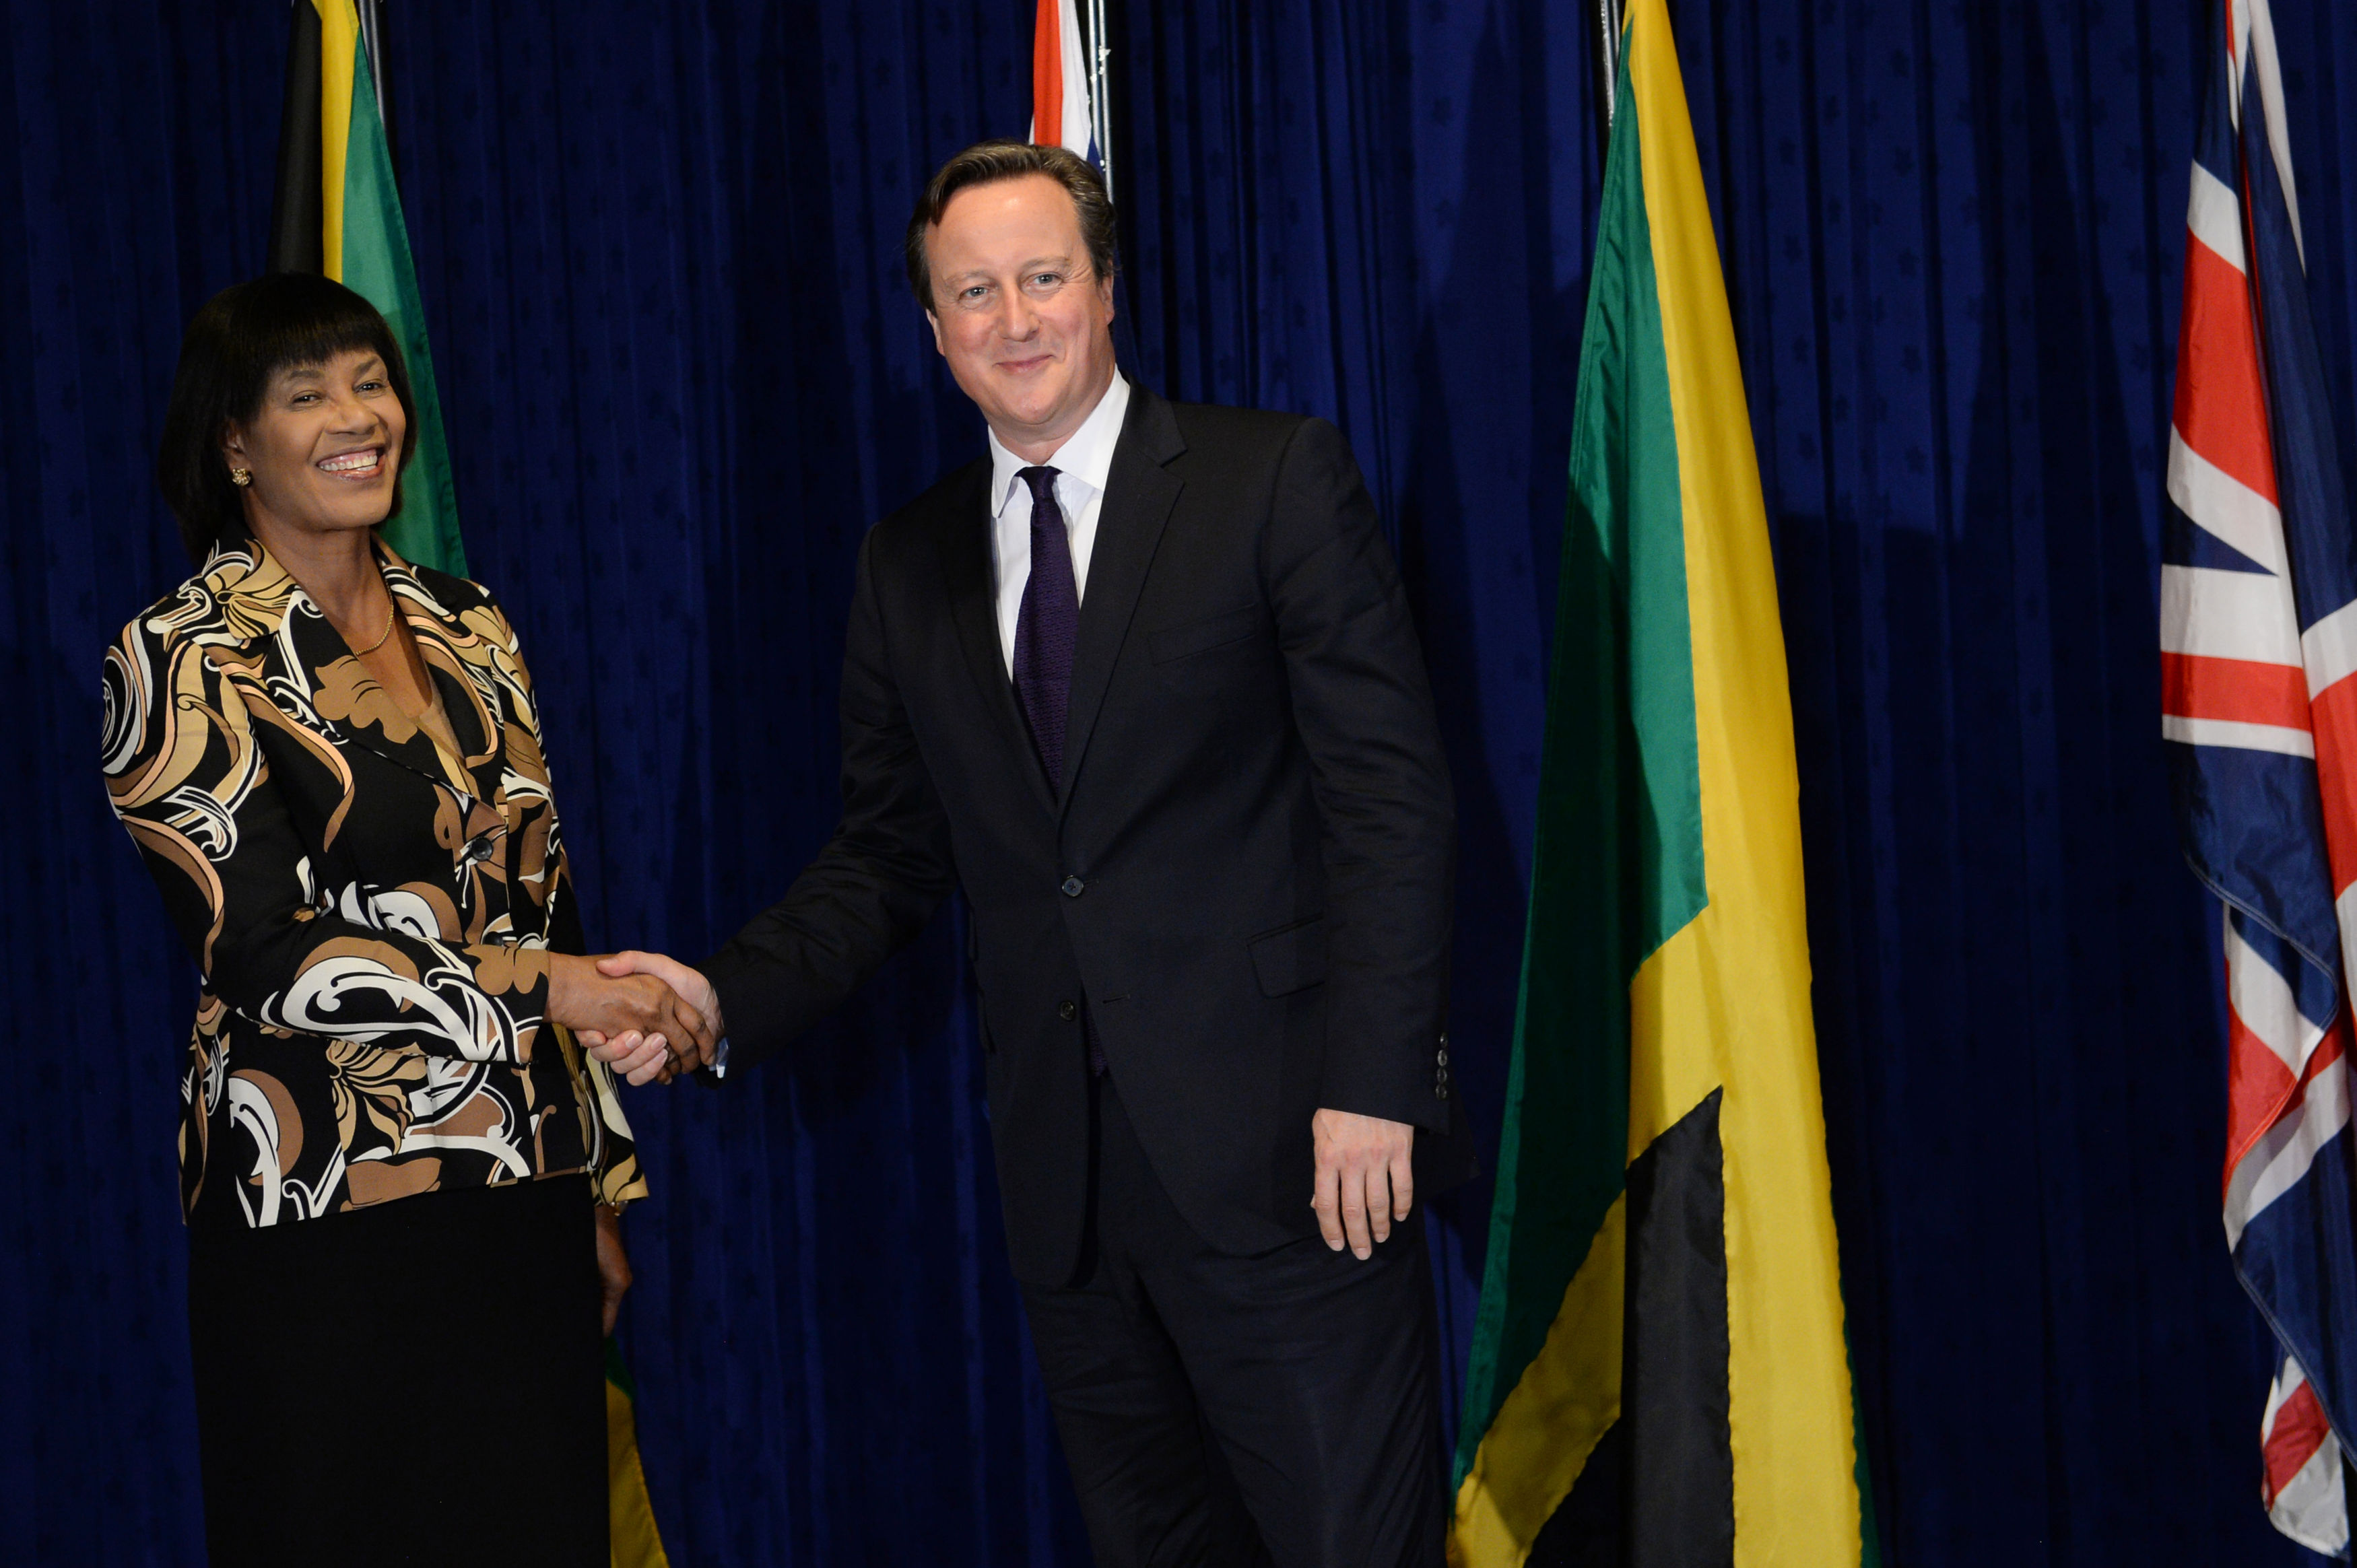 Prime Minister David Cameron is greeted by Jamaican Prime Minister Portia Simpson-Miller at her office, Jamaica House, in Kingston, on the first of a two day visit to the Caribbean on September 29, 2015